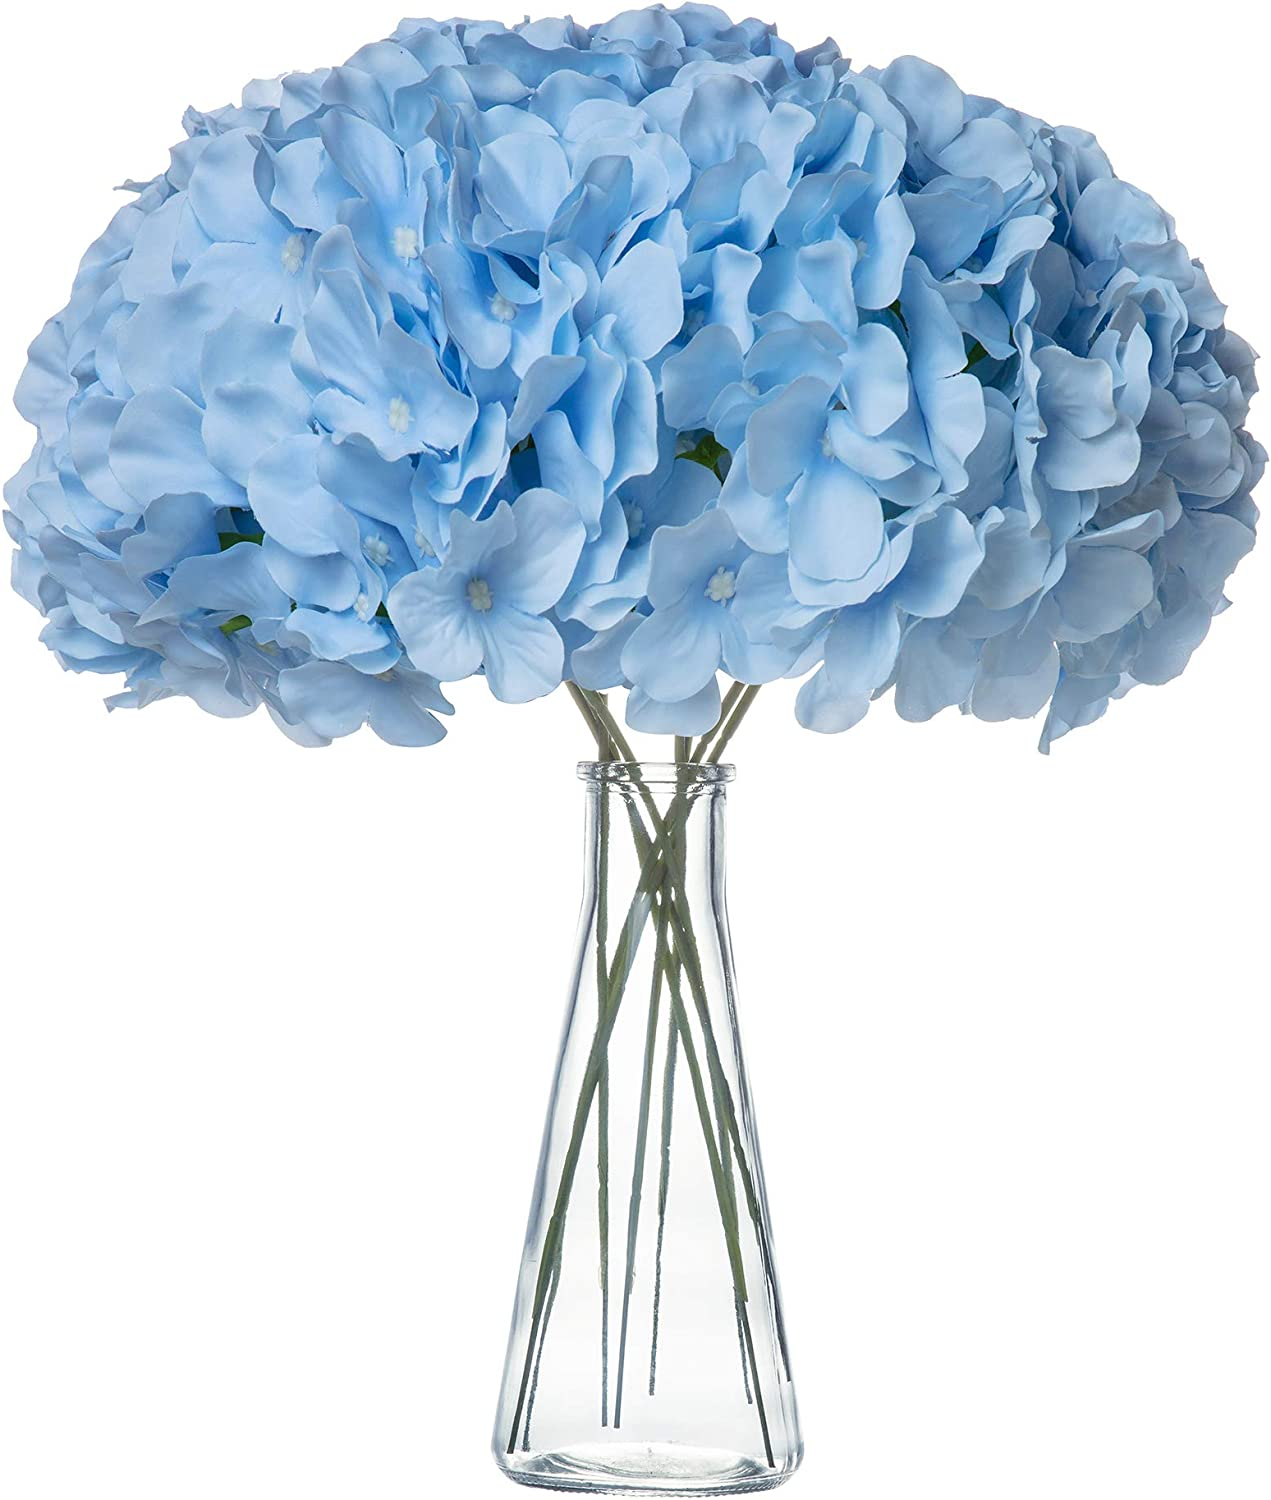 VARWANEO Sky Blue Hydrangea Silk Fake Flowers Heads with Stems, Artificial Flowers for Decoration Wedding Home Party Shop Baby Shower,Room Decor for Bedroom Aesthetic, Pack of 10